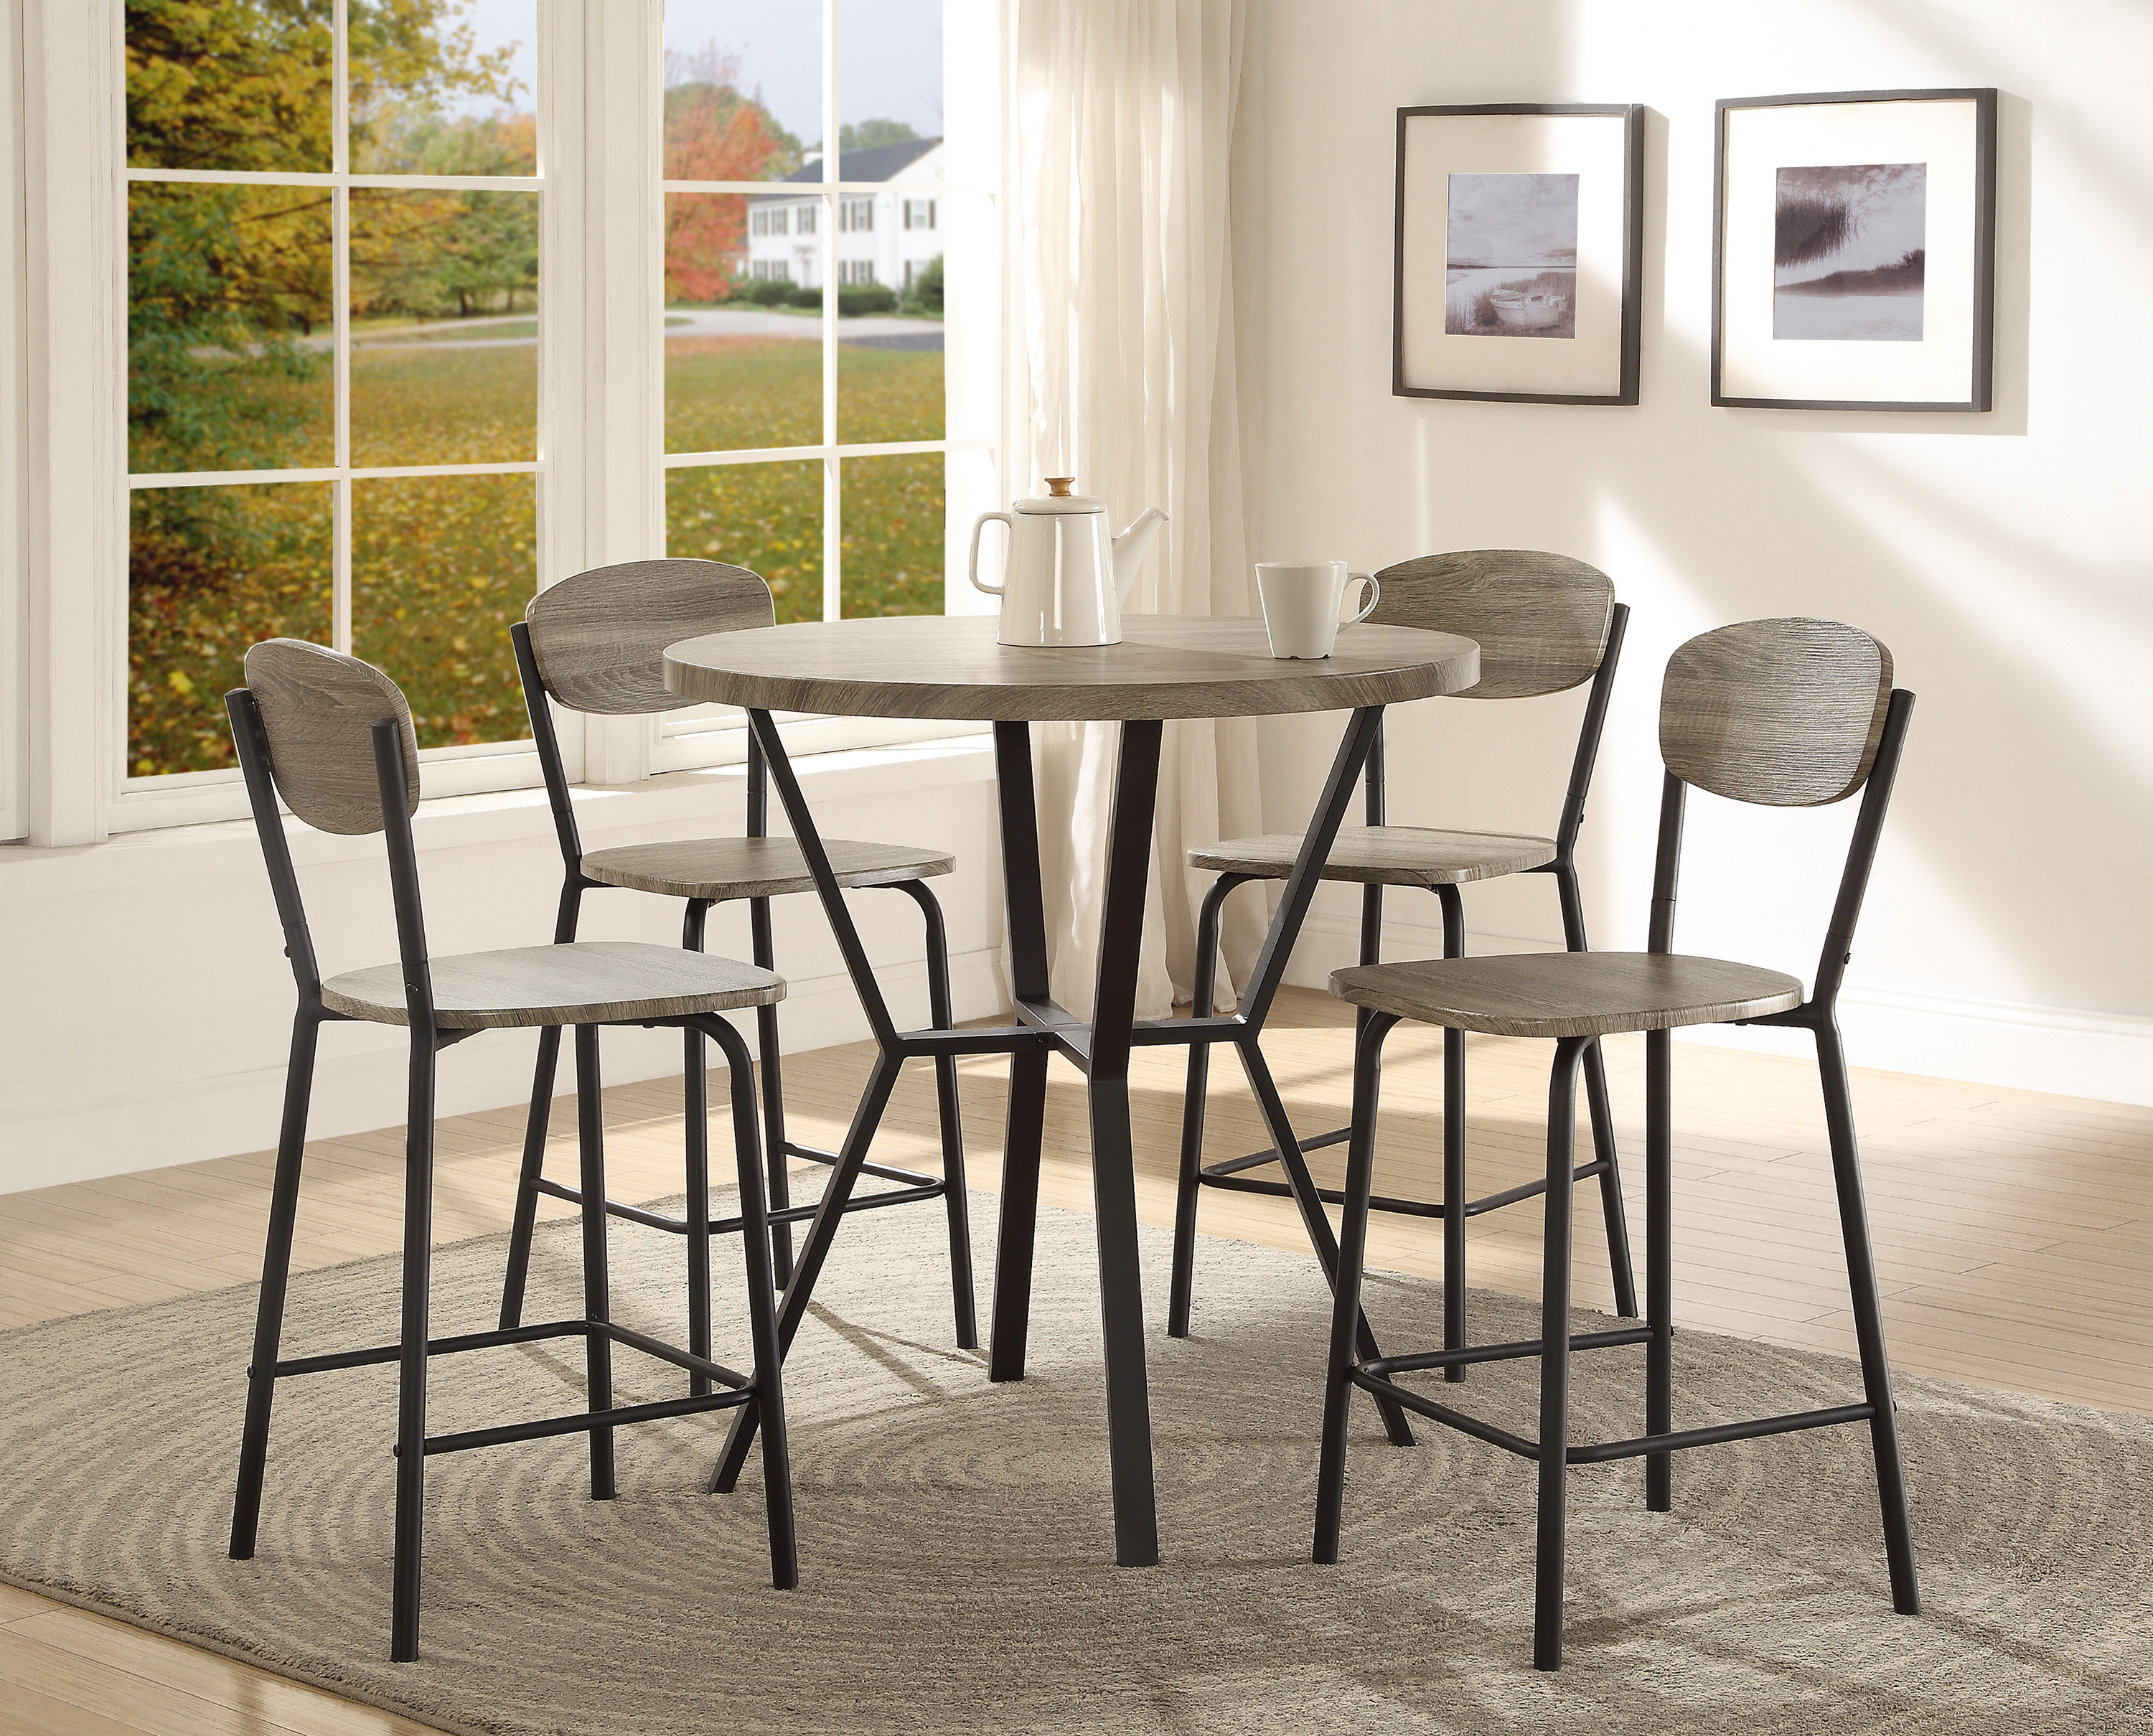 Millwood Pines Felicia 5 Piece Counter Height Dining Set & Reviews For Favorite Ephraim 5 Piece Dining Sets (View 3 of 25)